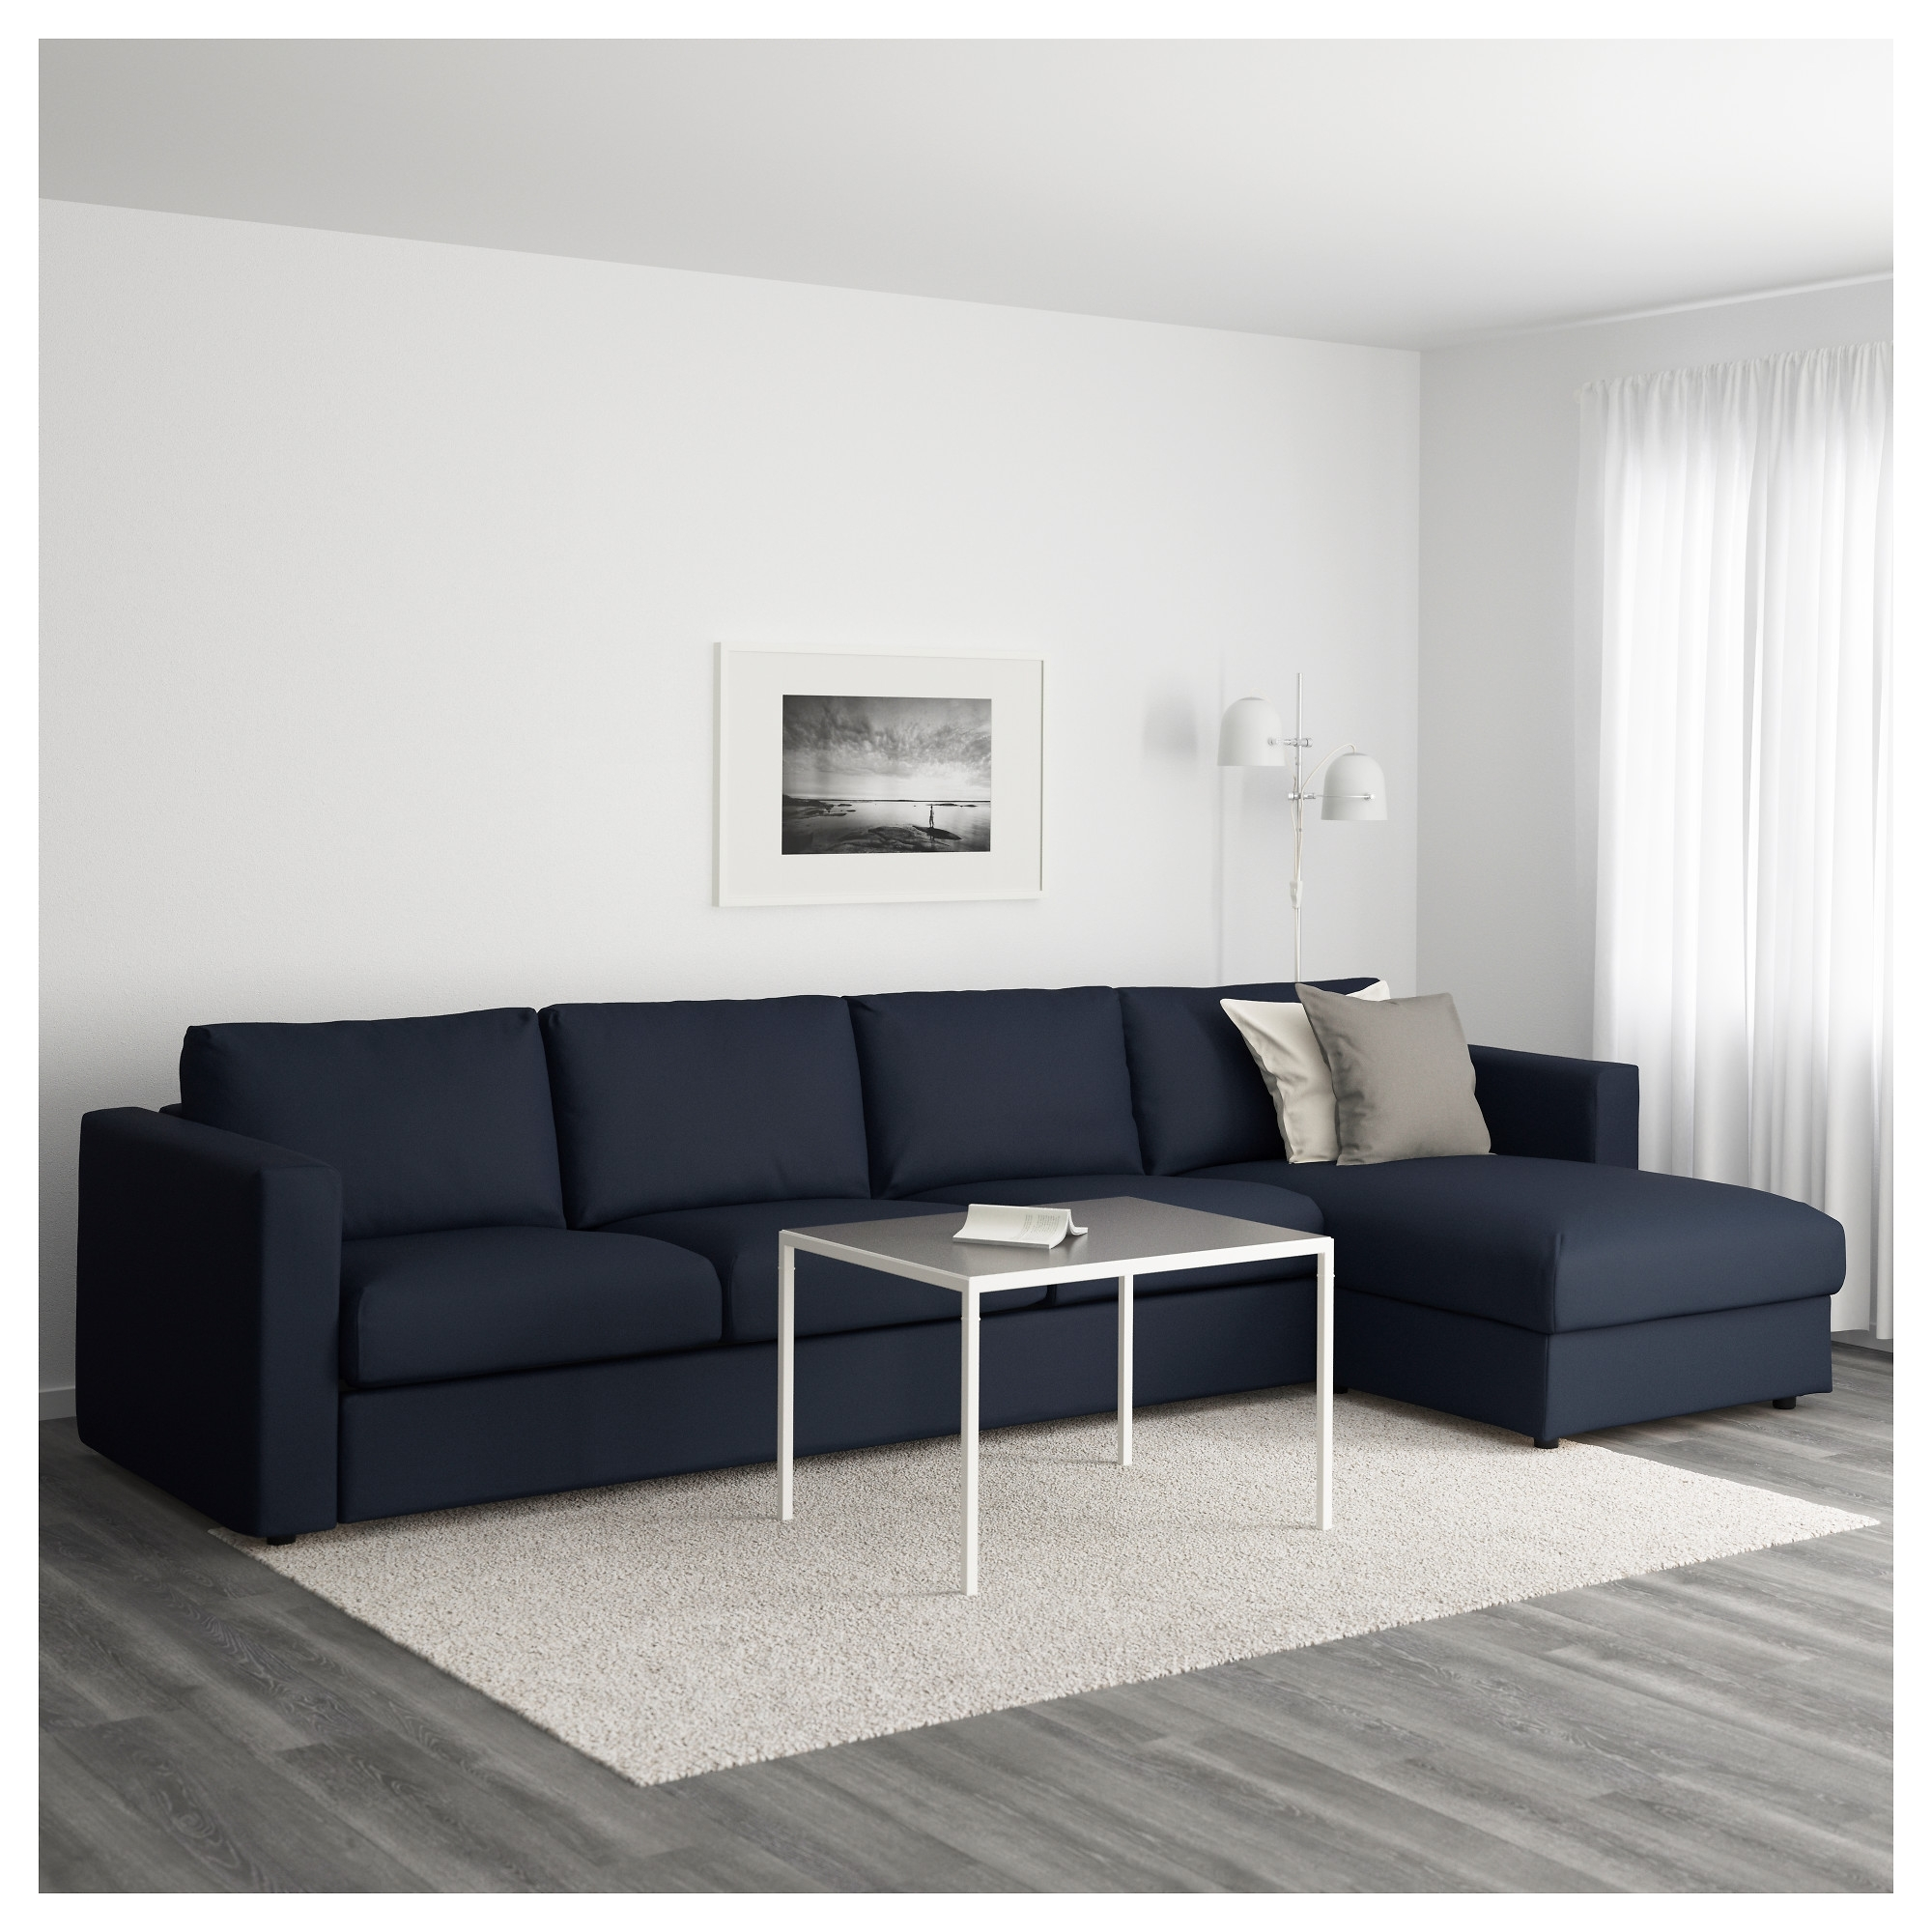 Vimle 4-Seat Sofa With Chaise Longue/gräsbo Black-Blue - Ikea within Popular 4 Seat Sofas